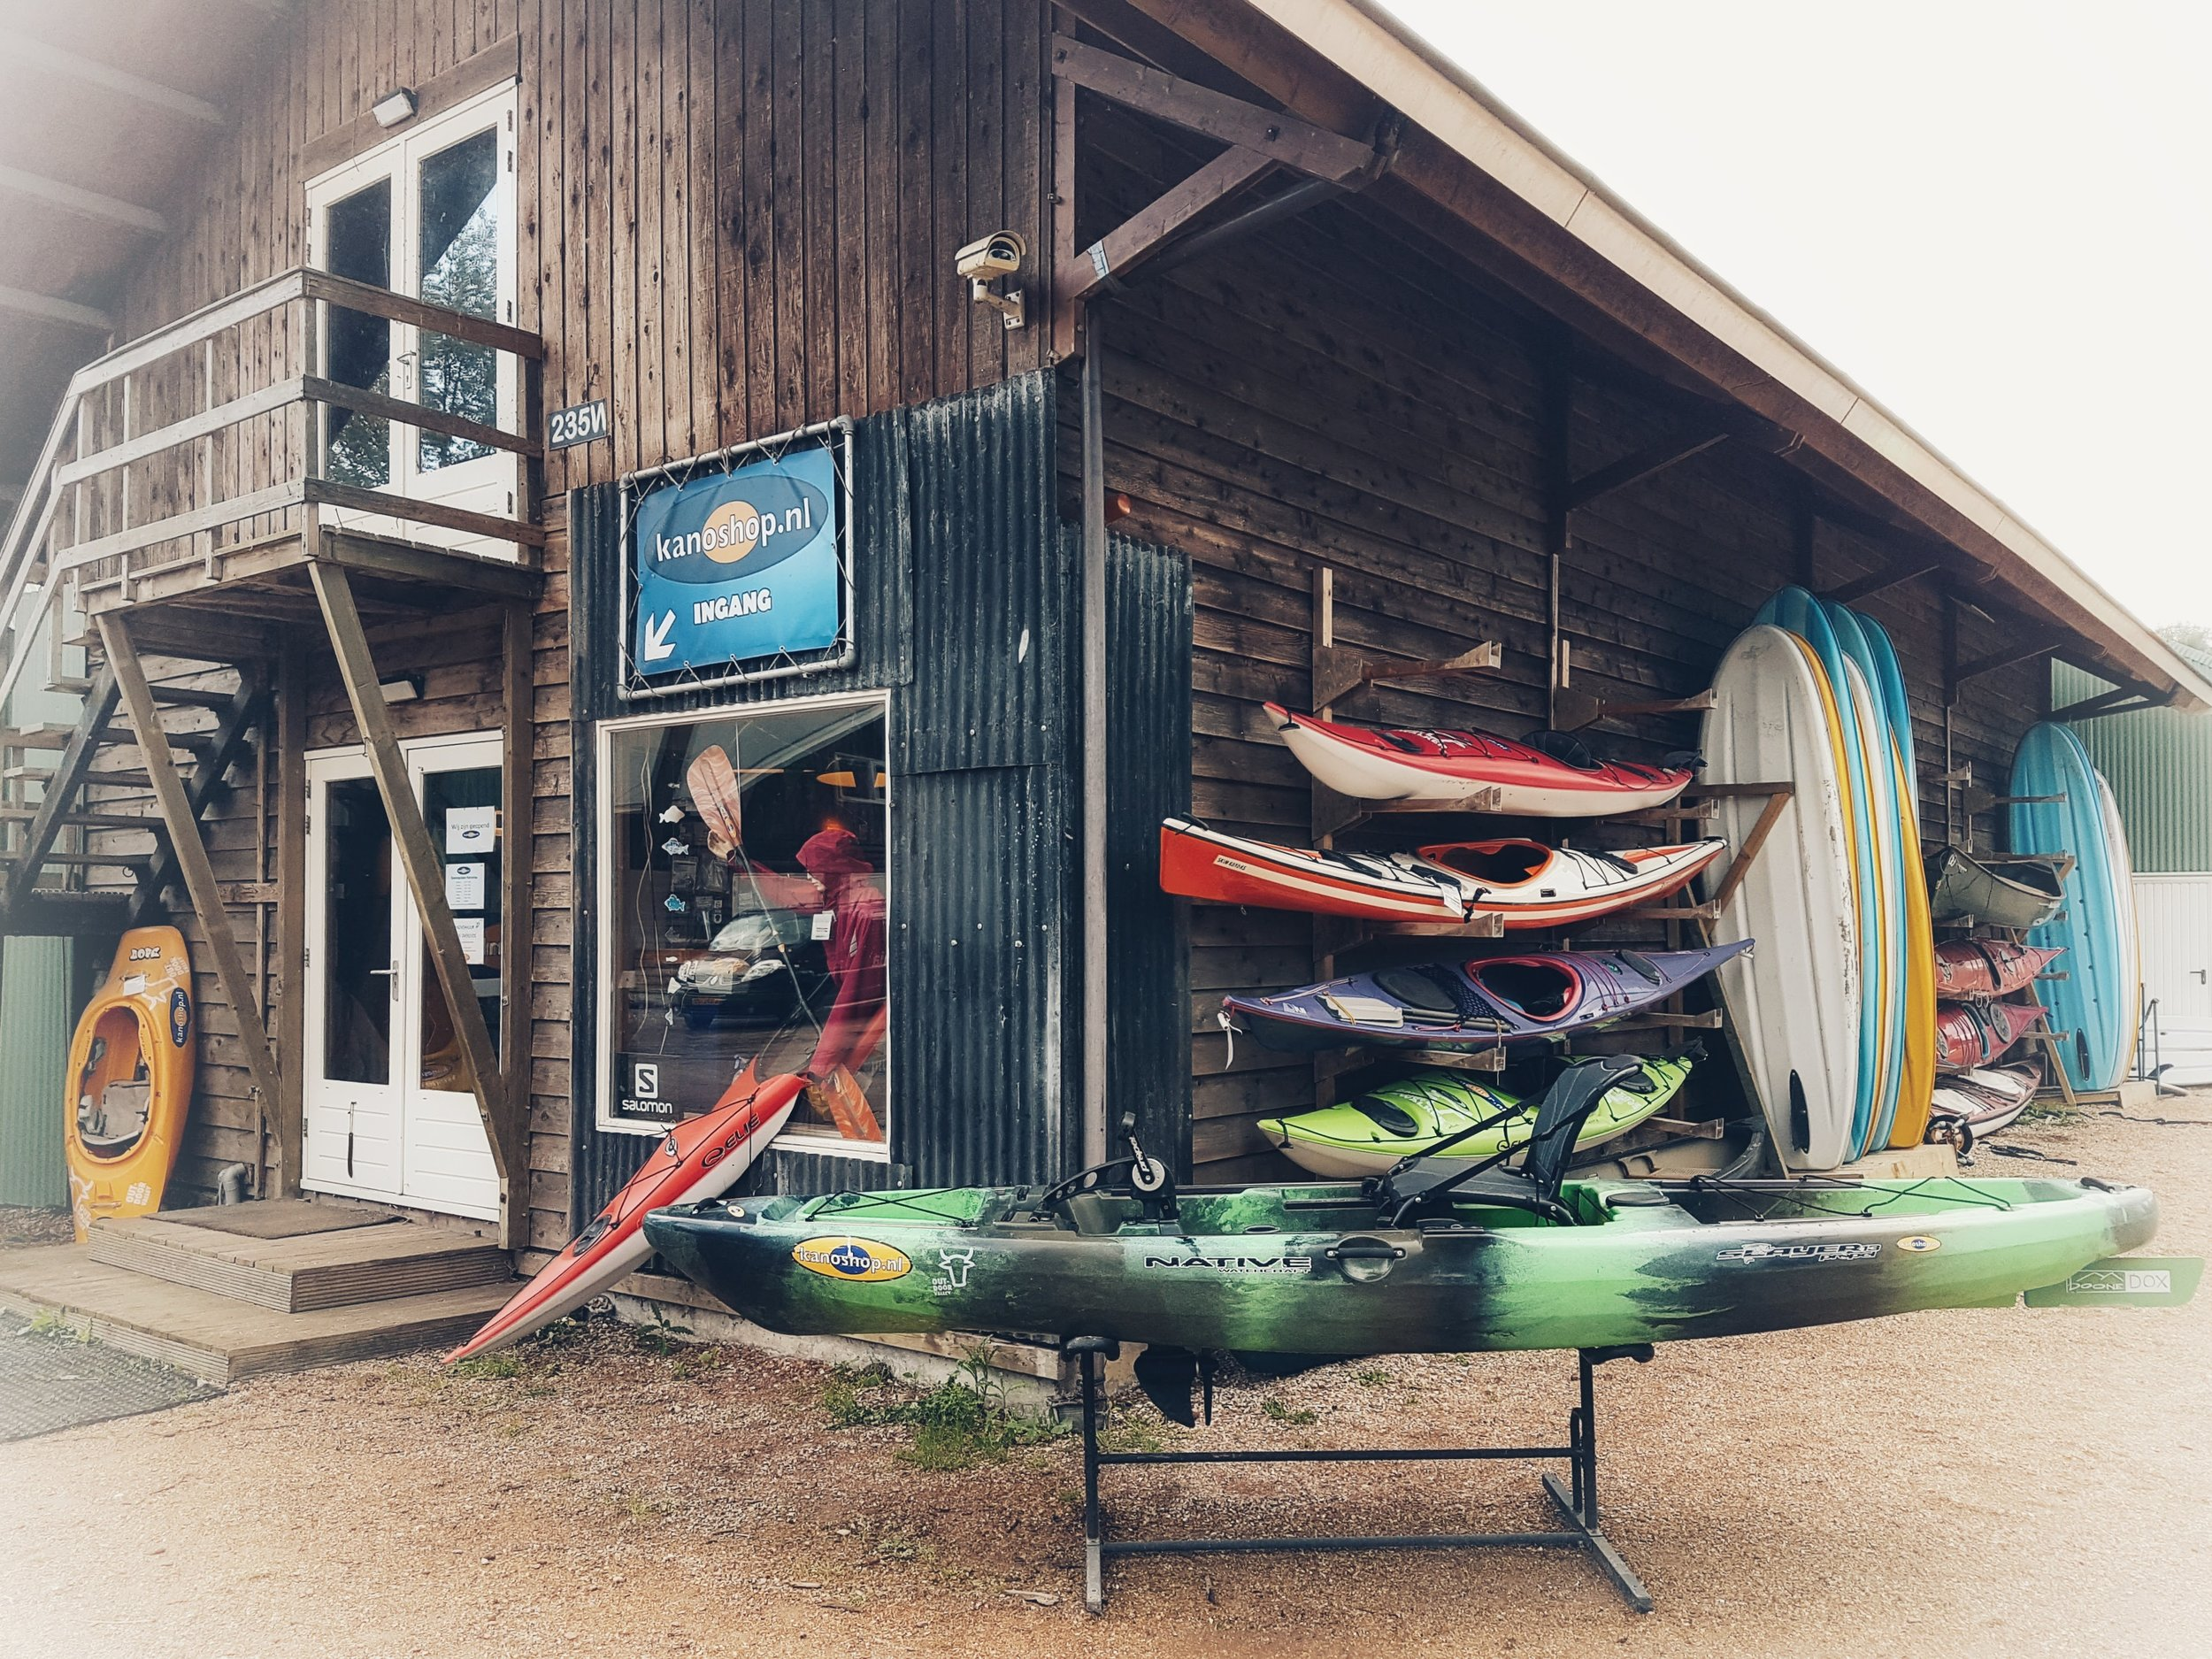 Watersports and Canoe shop.